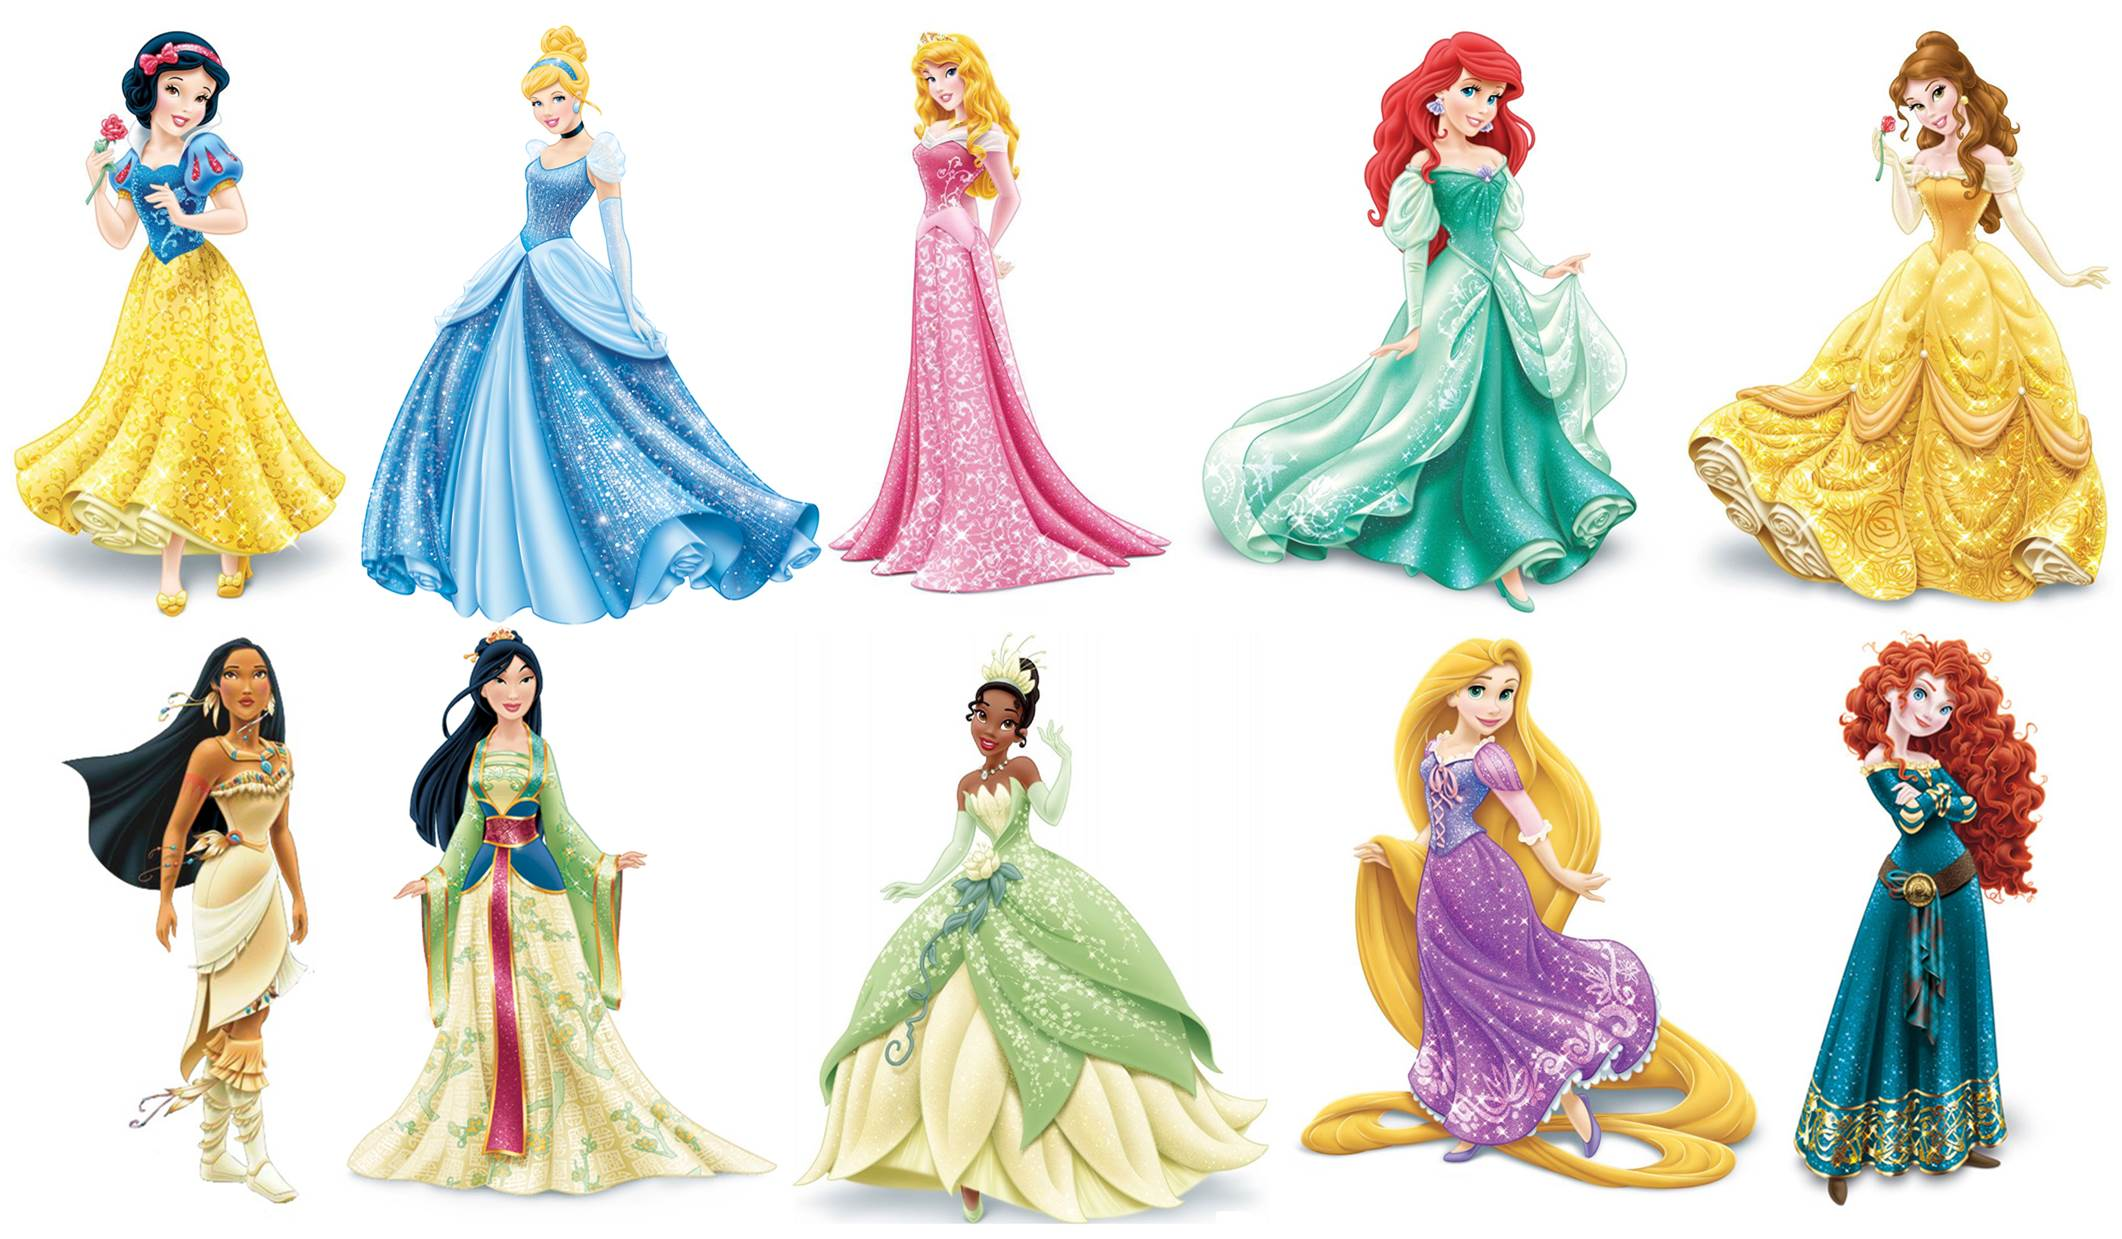 Disney princess free